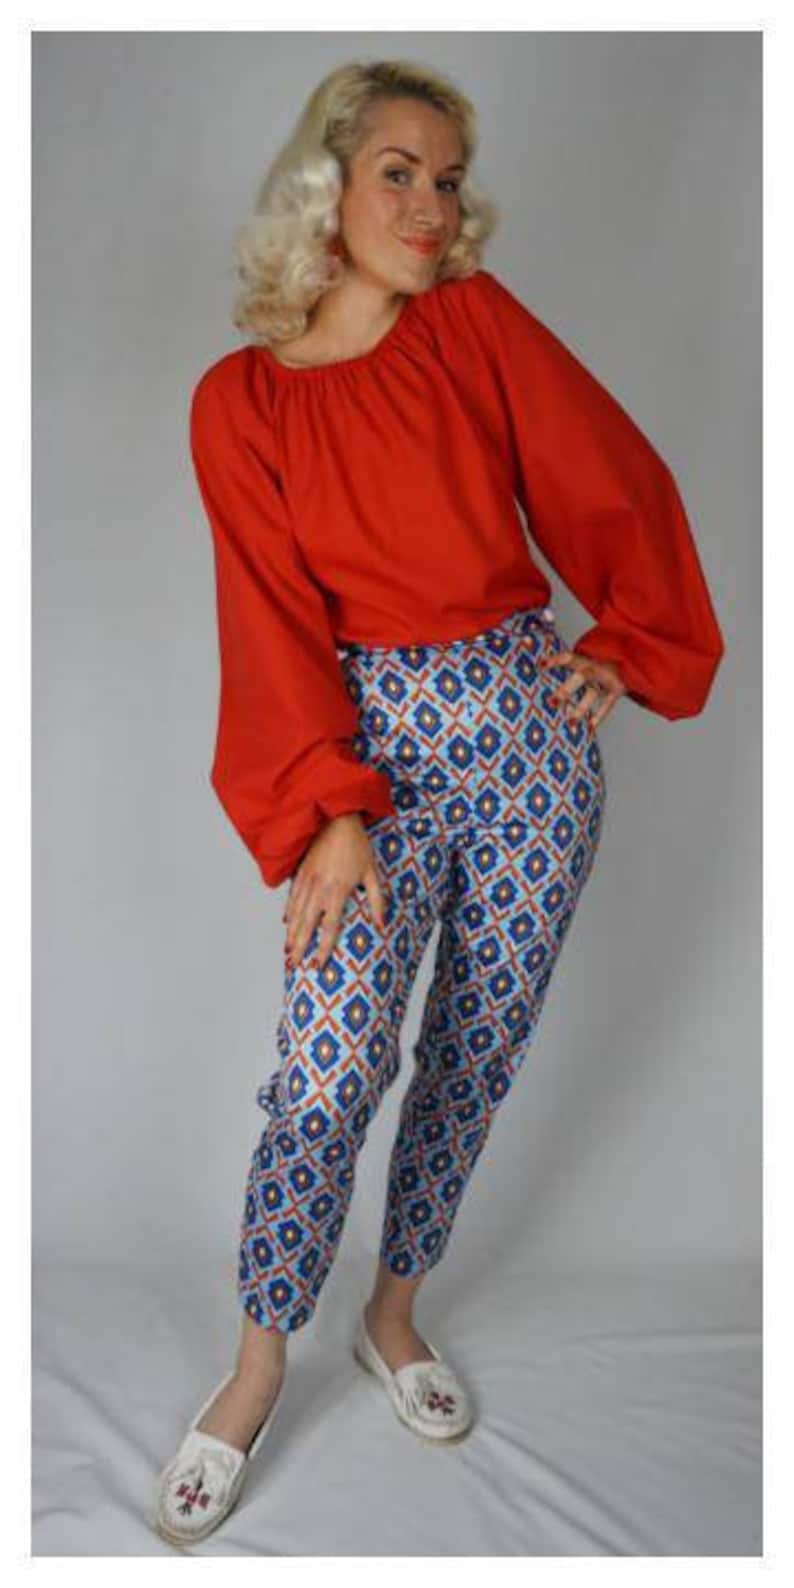 60s Fancy Dress and Quality Clothing 1960s UK Aztec 1950s 1960s vintage style cigarette pants pin up capri $71.10 AT vintagedancer.com